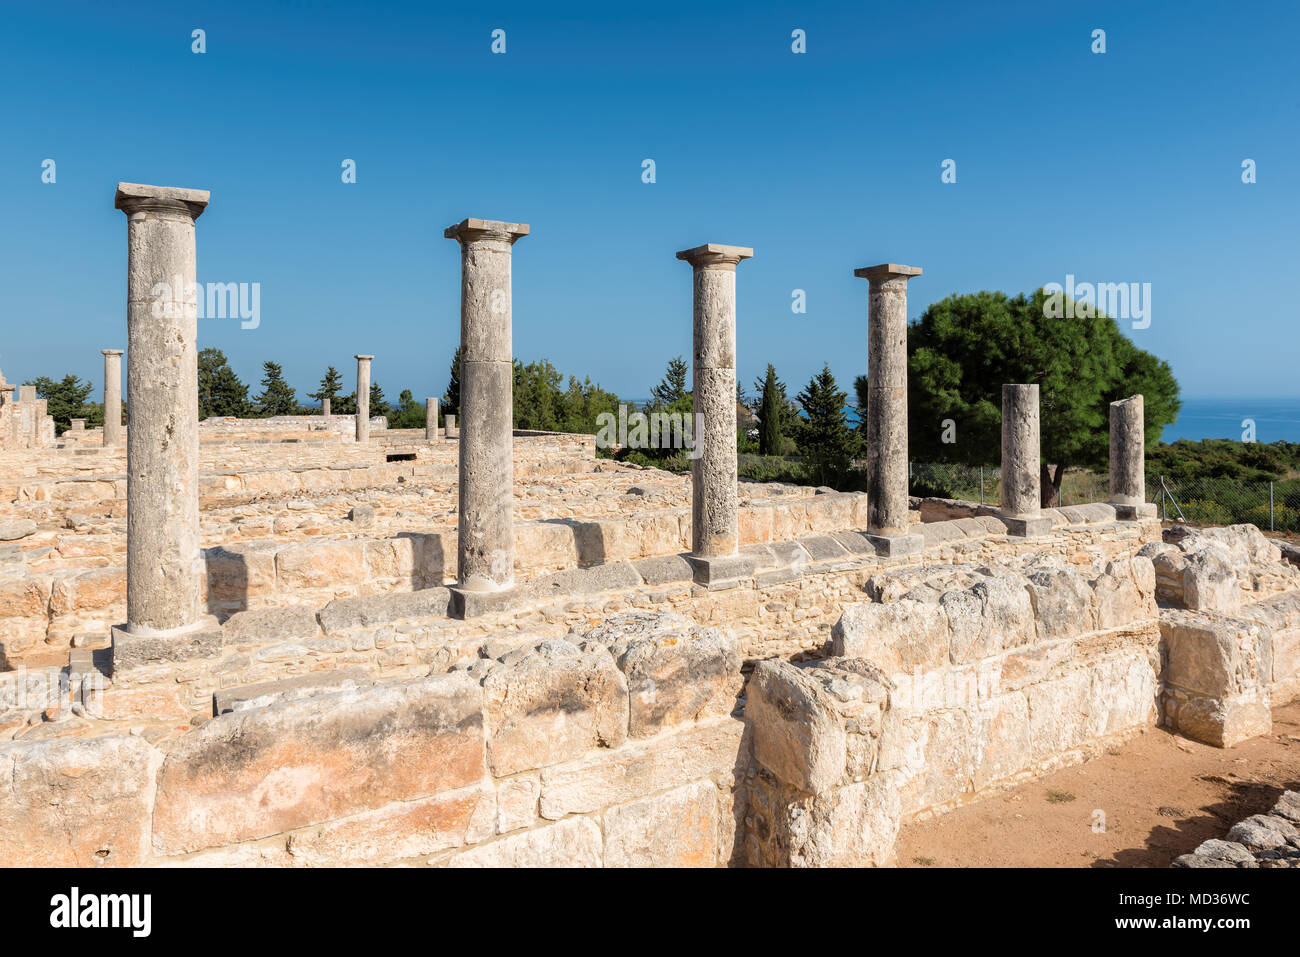 Ancient Columns of Apollo Temple ruins, Limassol District. Cyprus. - Stock Image